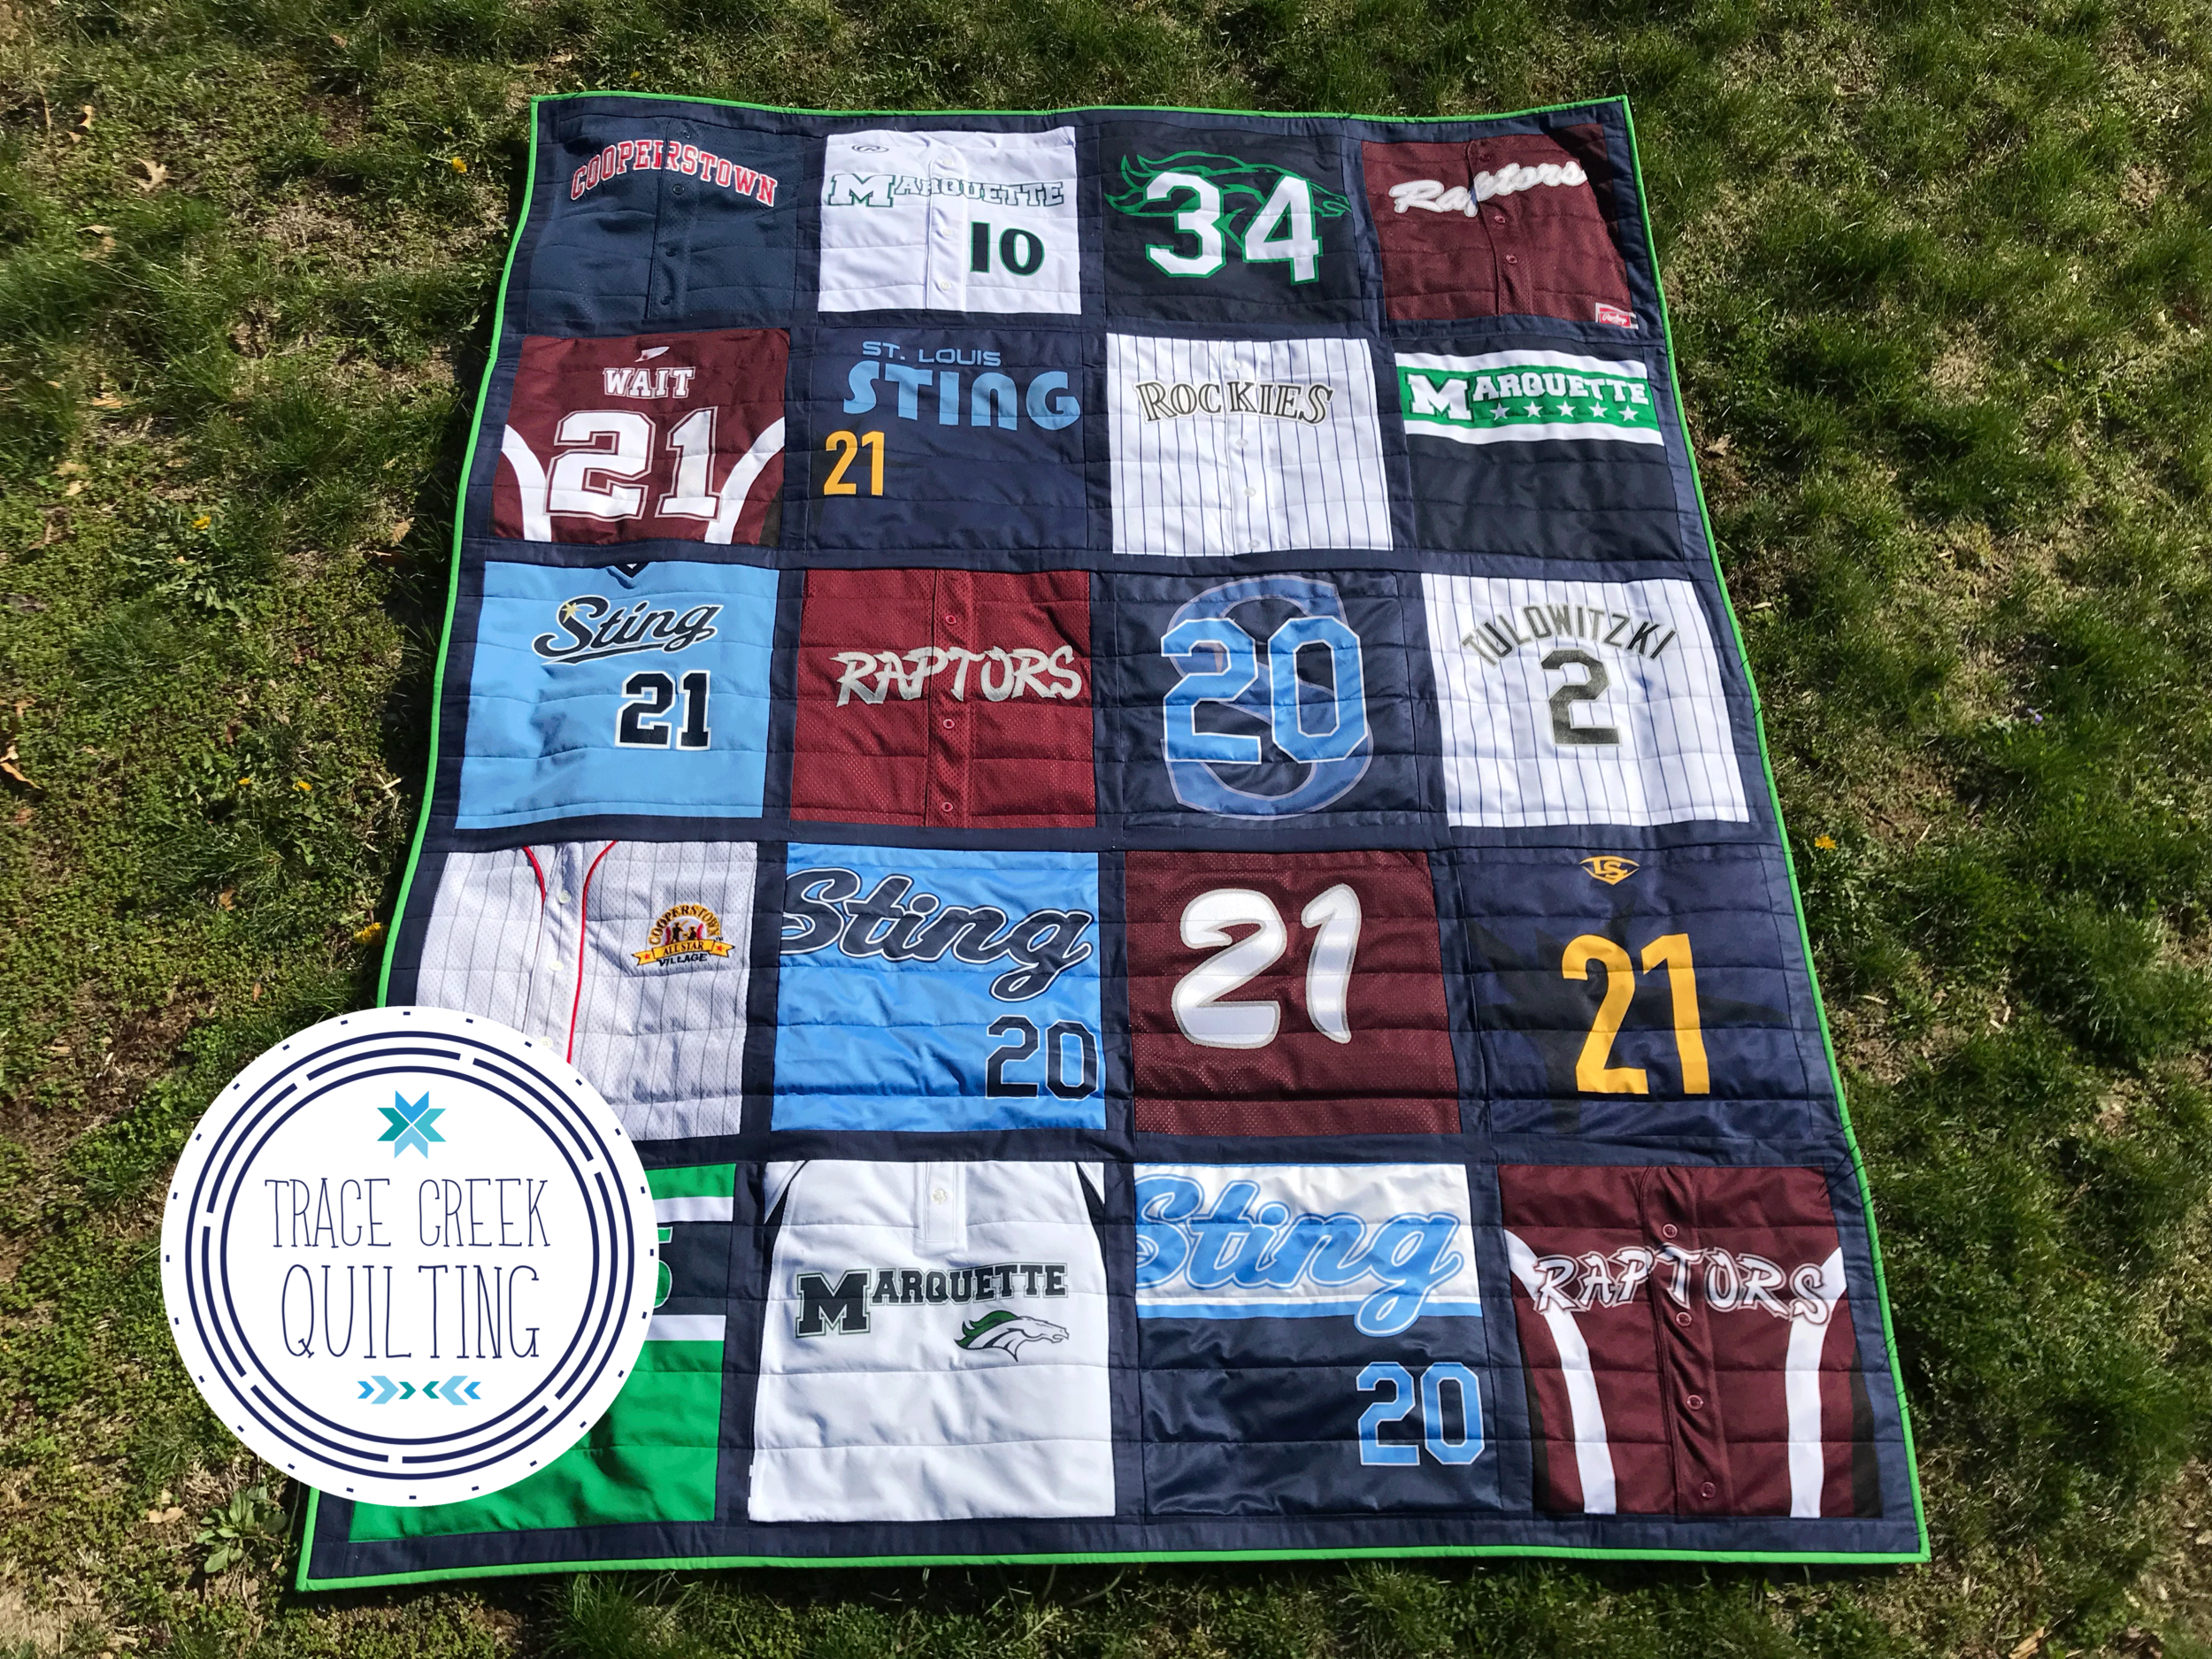 TShirt-Quilt-Trace-Creek-Quilting-006.png